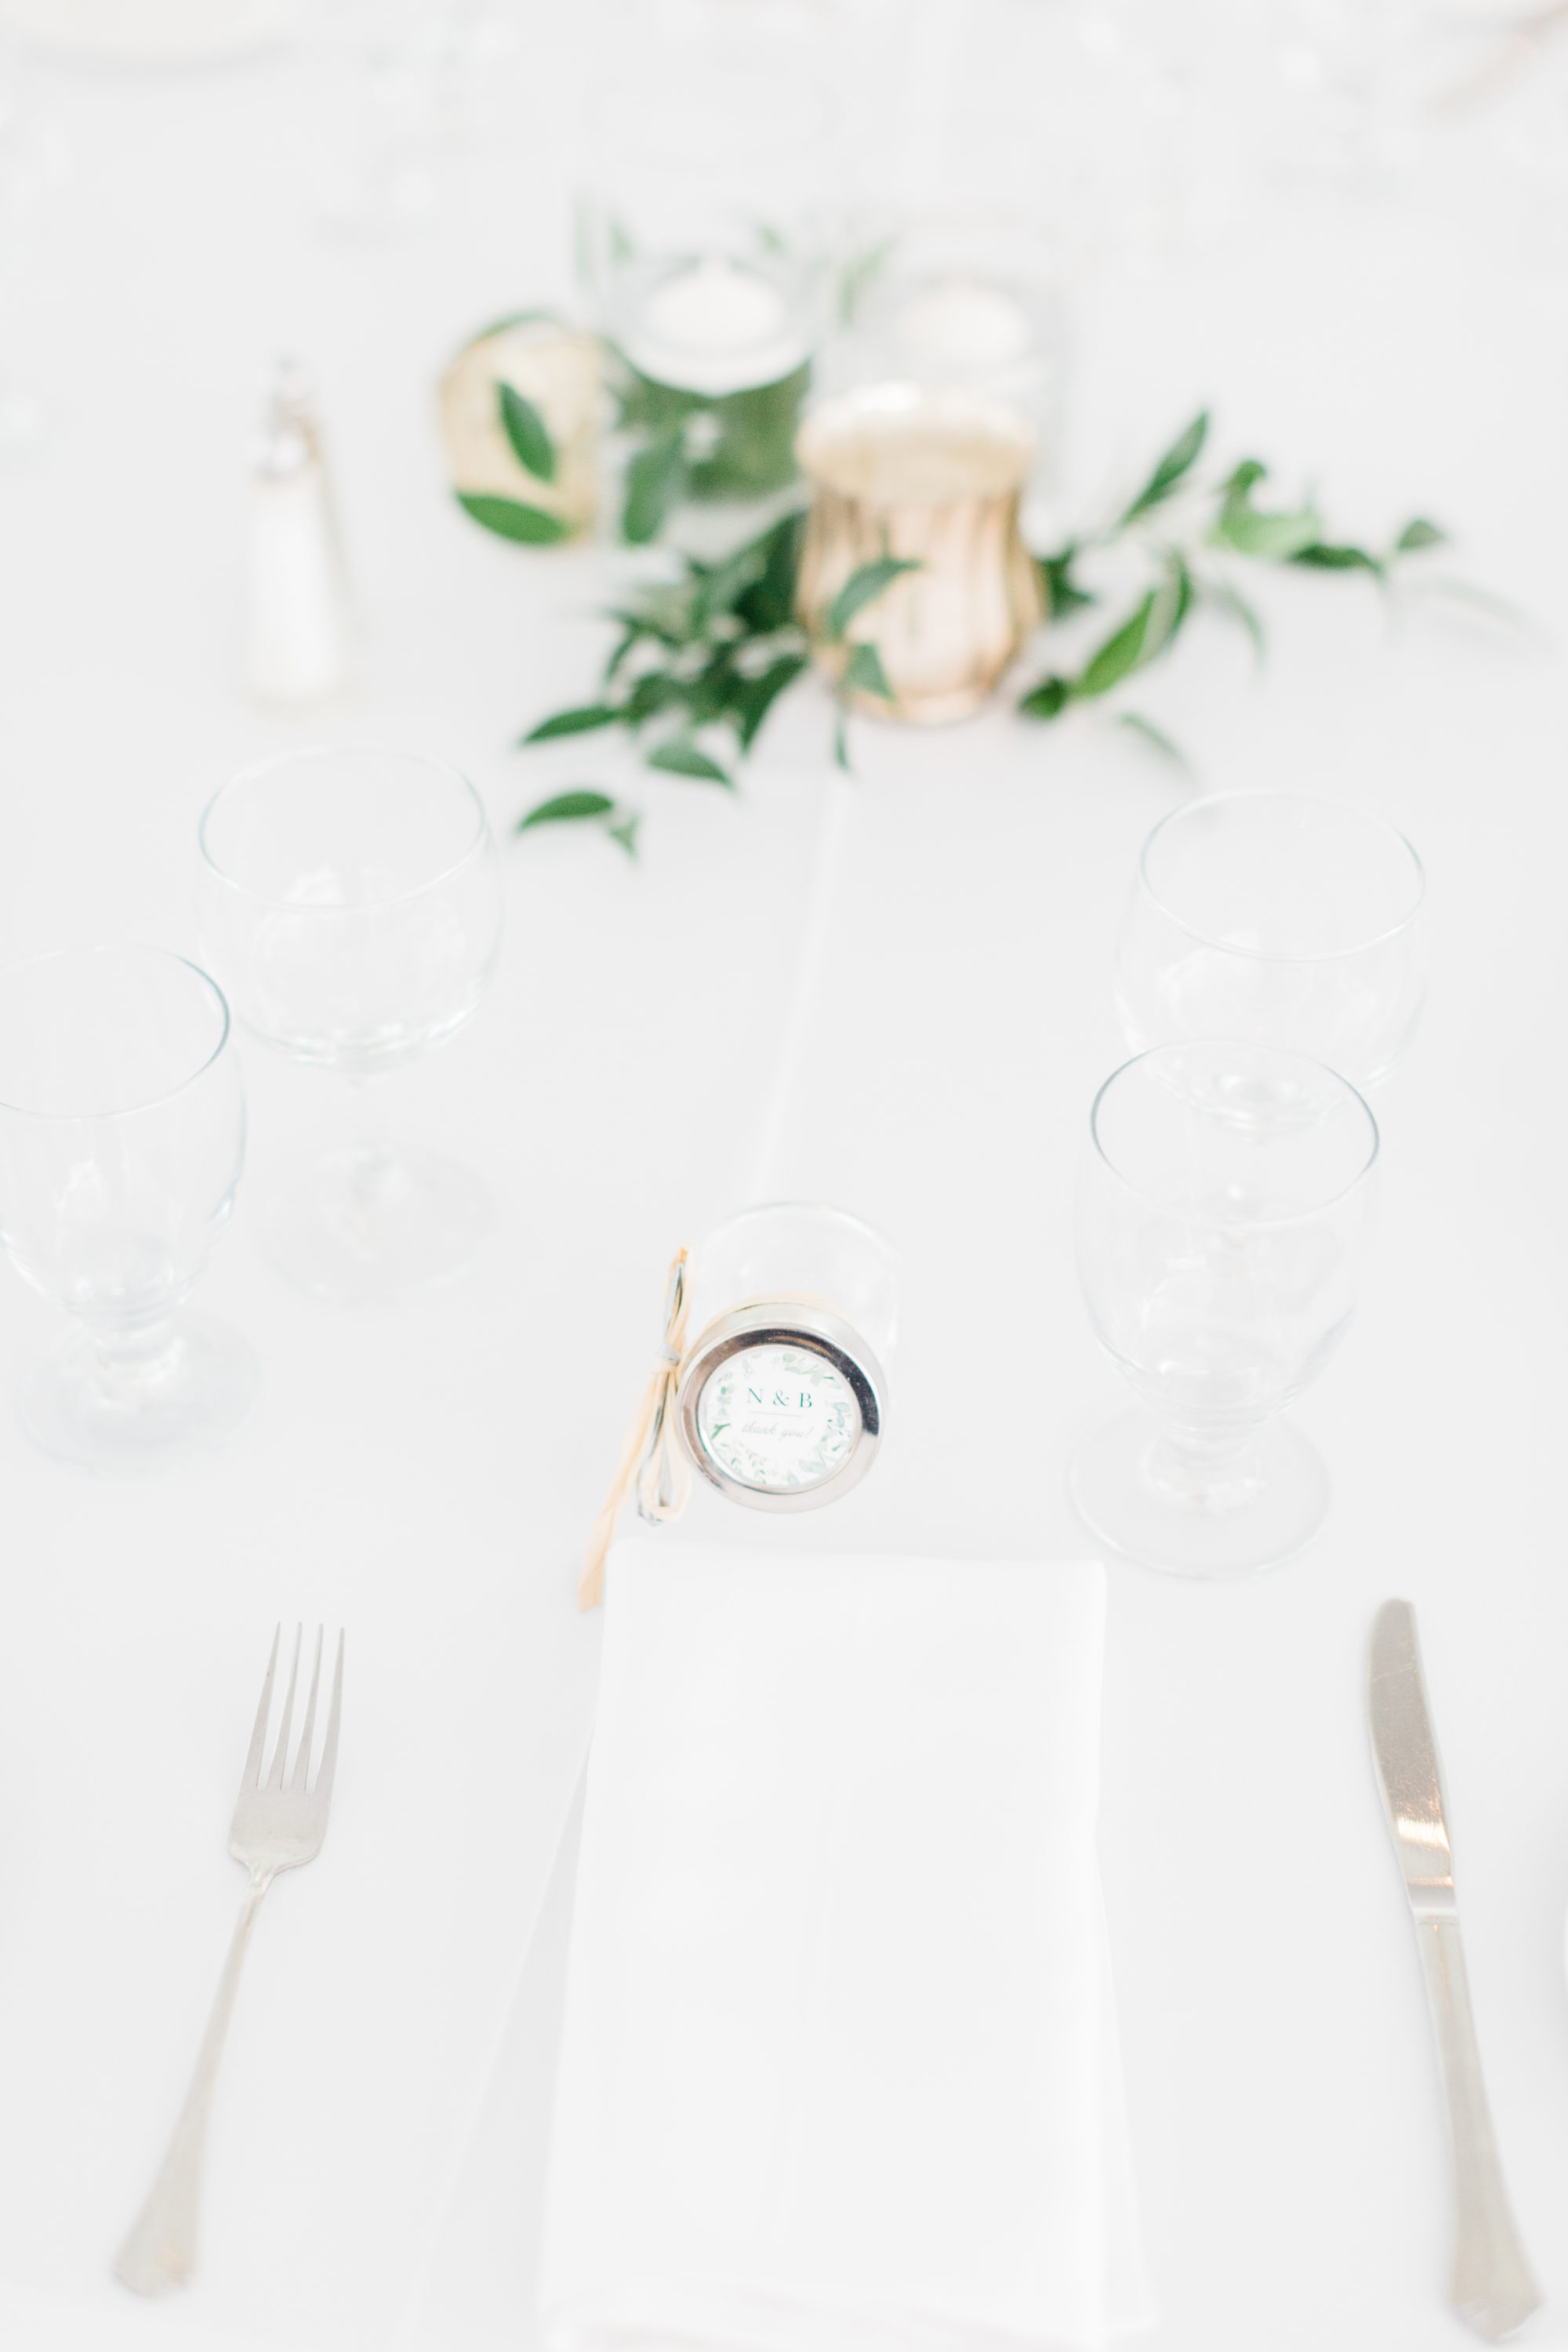 Table details at reception